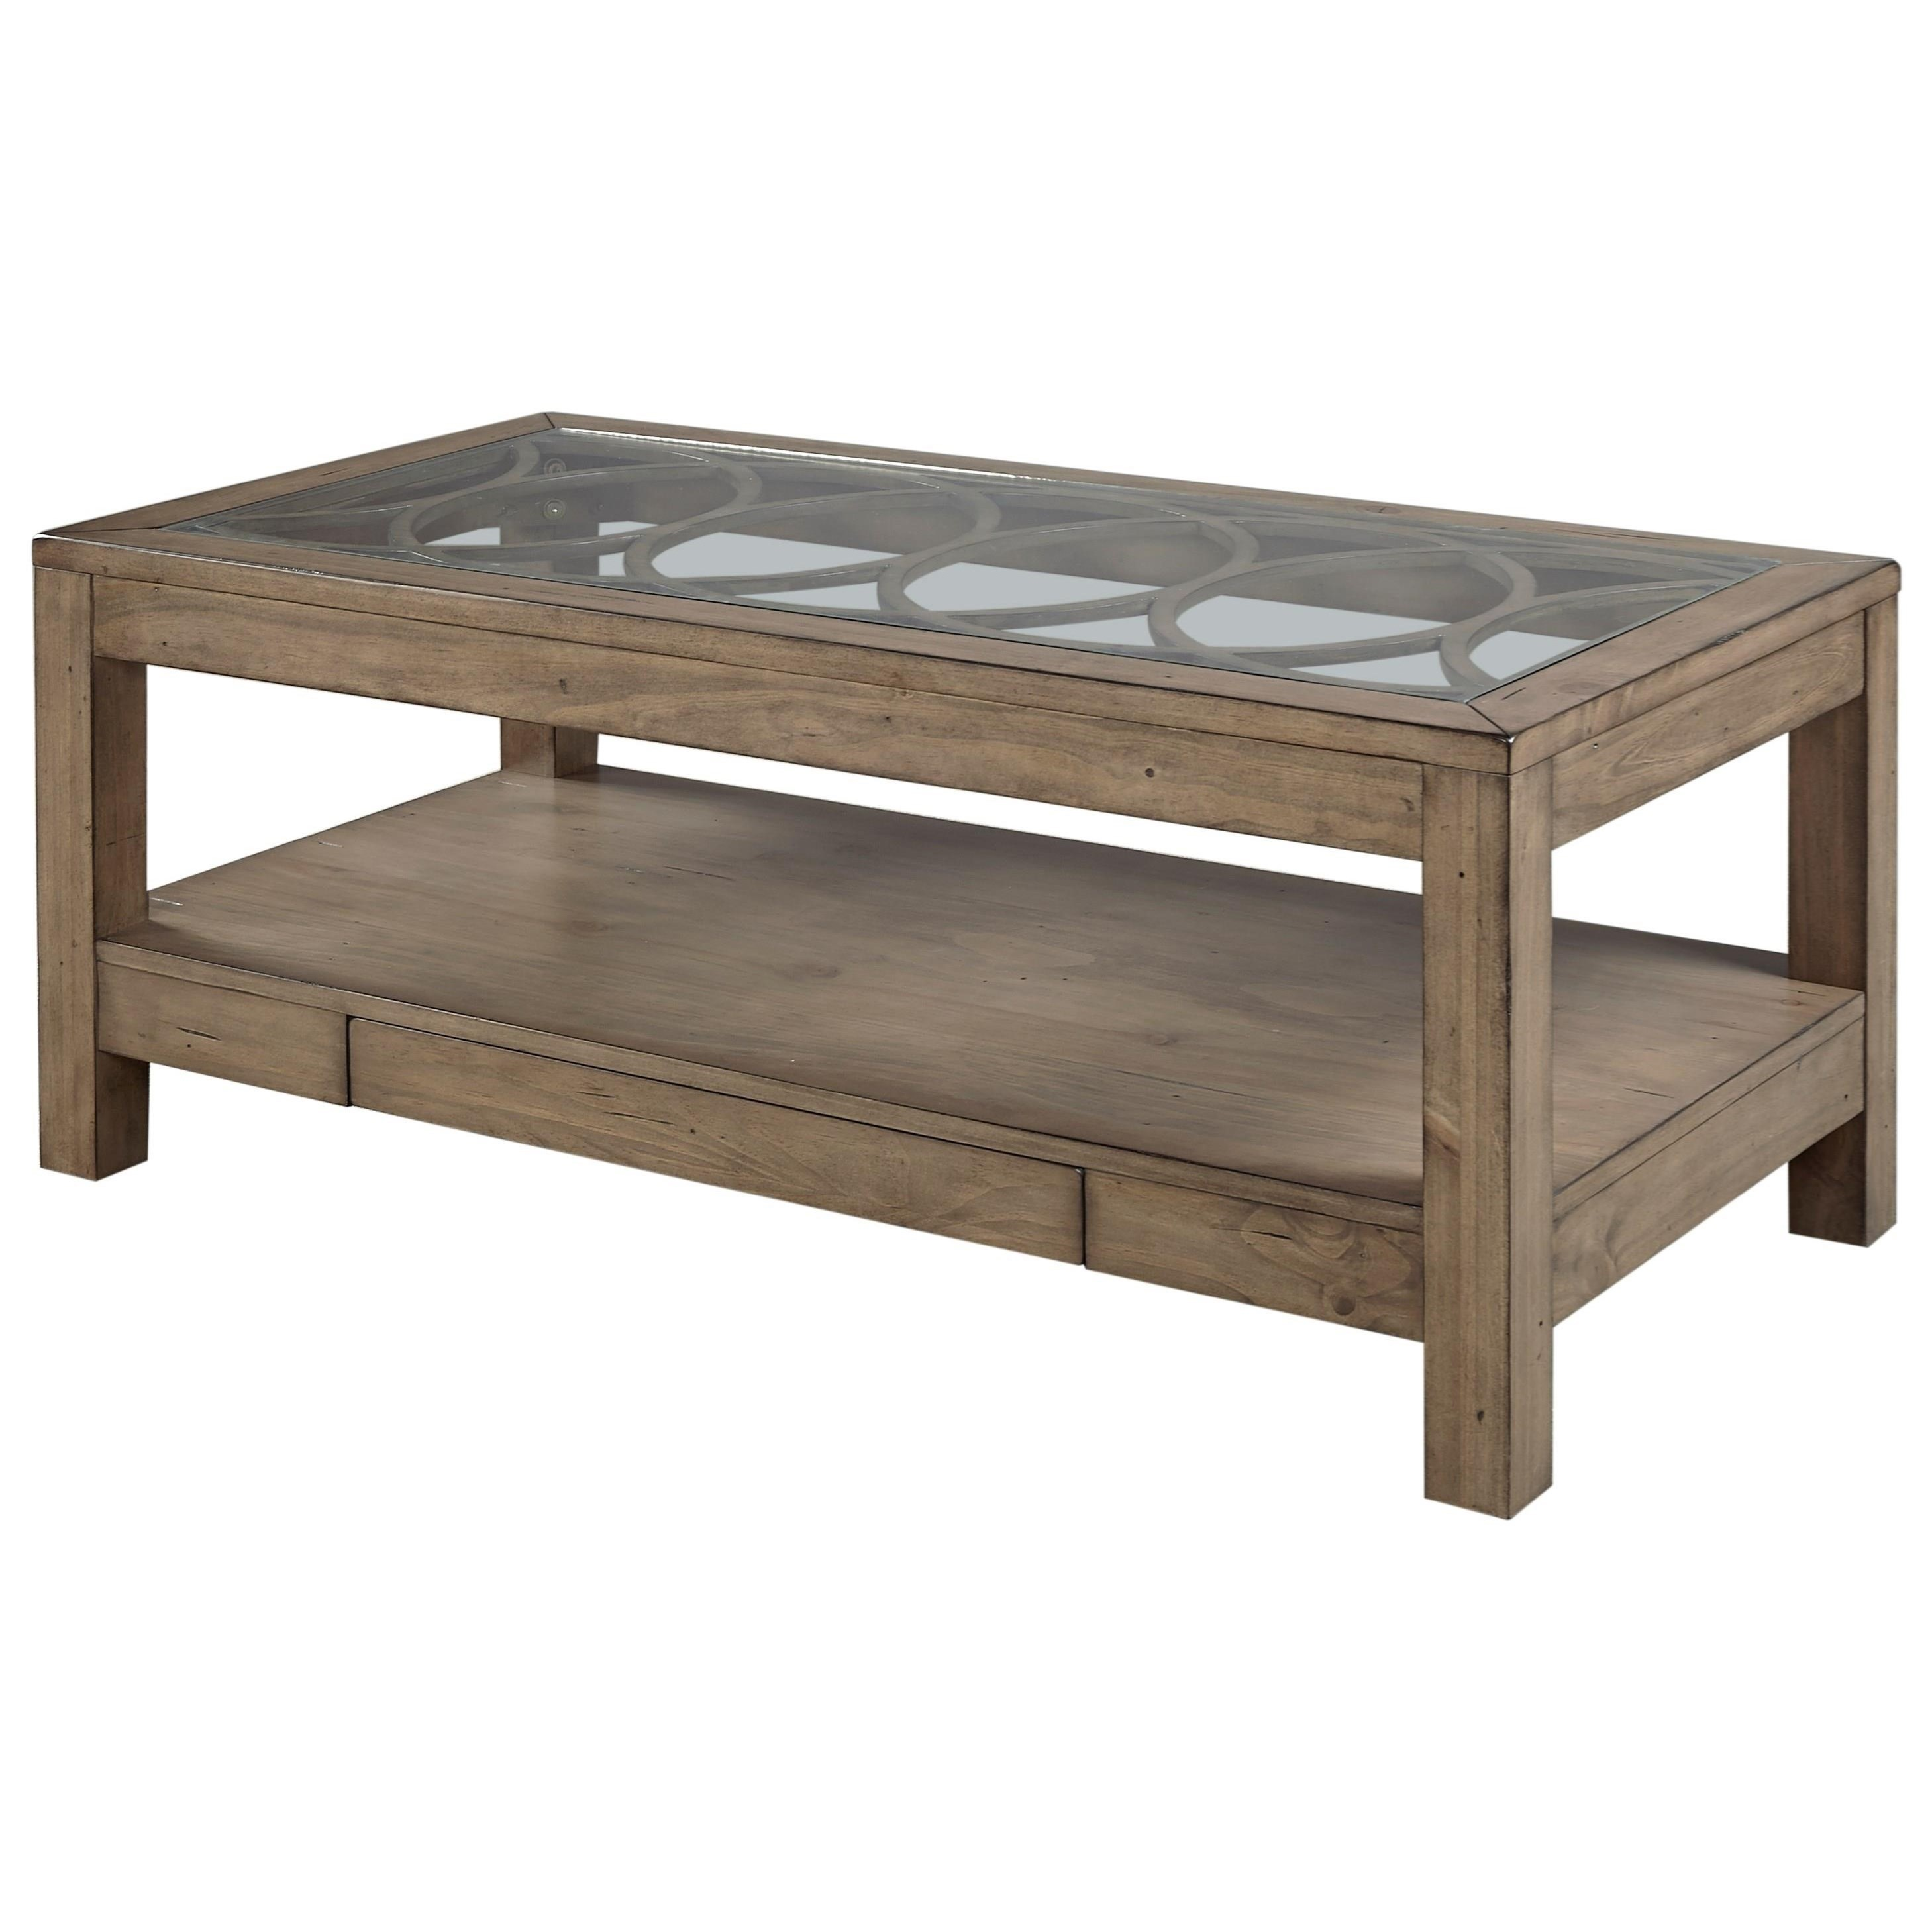 Aspenhome Tildon Rectangular Cocktail Table - Item Number: I56-9105GL